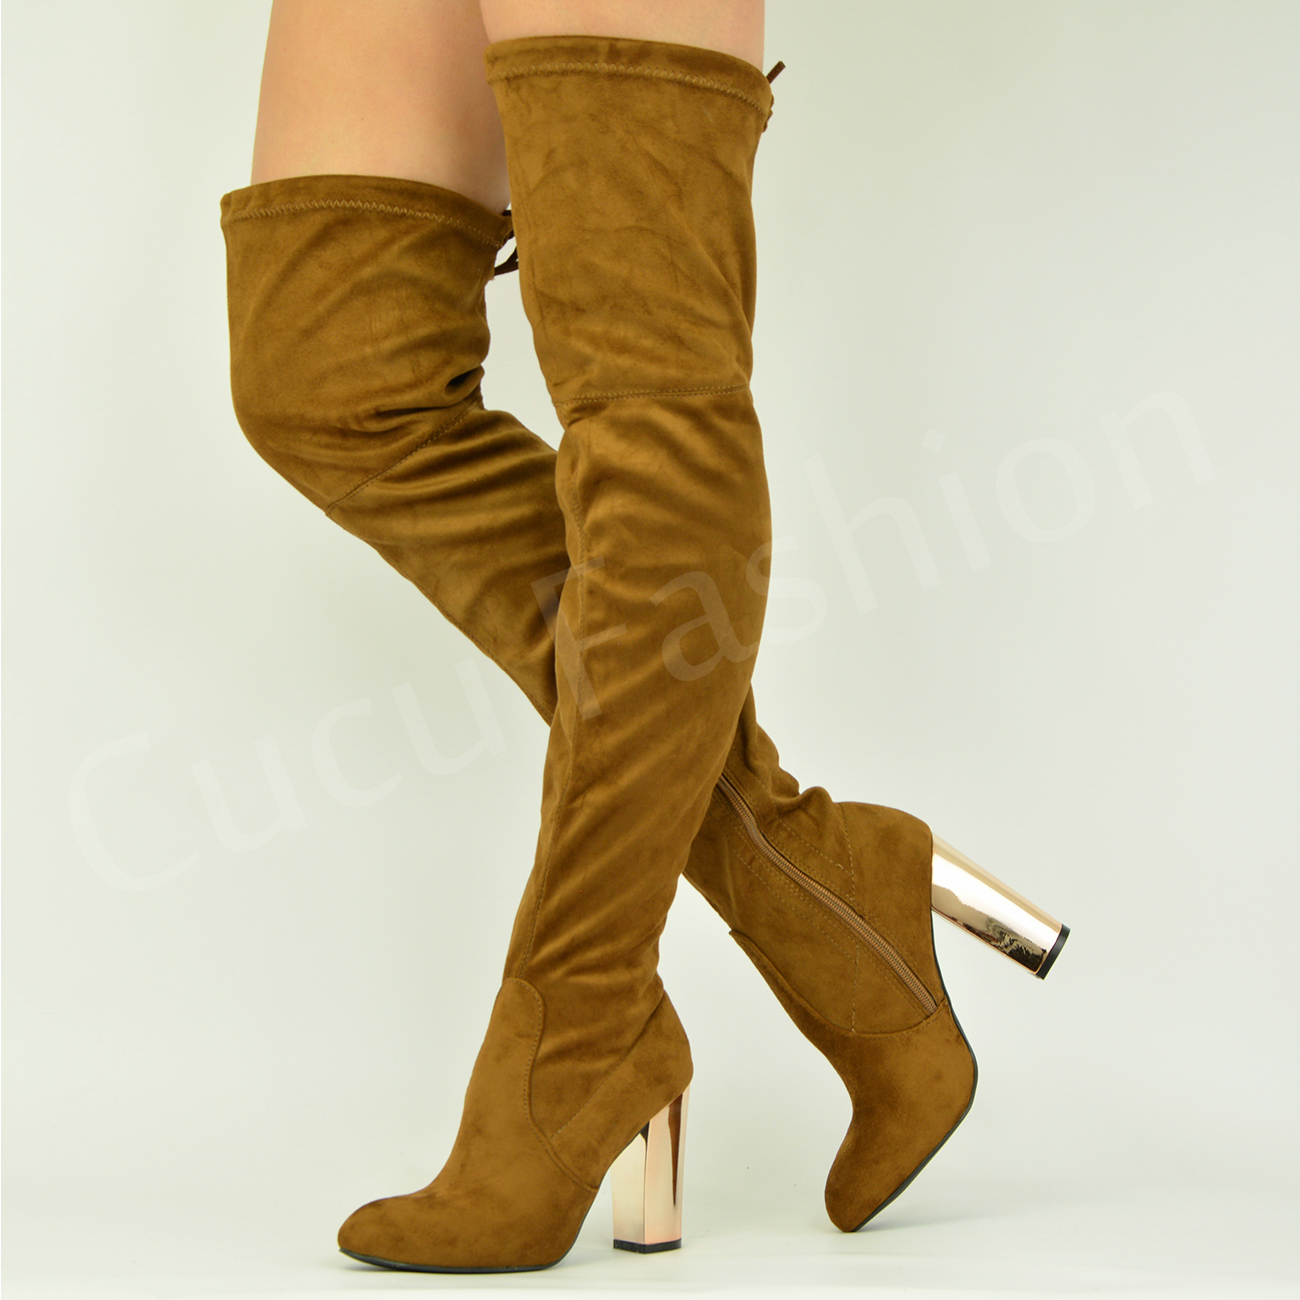 New-Womens-Ladies-Over-The-Knee-Boots-High-Block-Heel-Winter-Shoes-Size-Uk-3-8